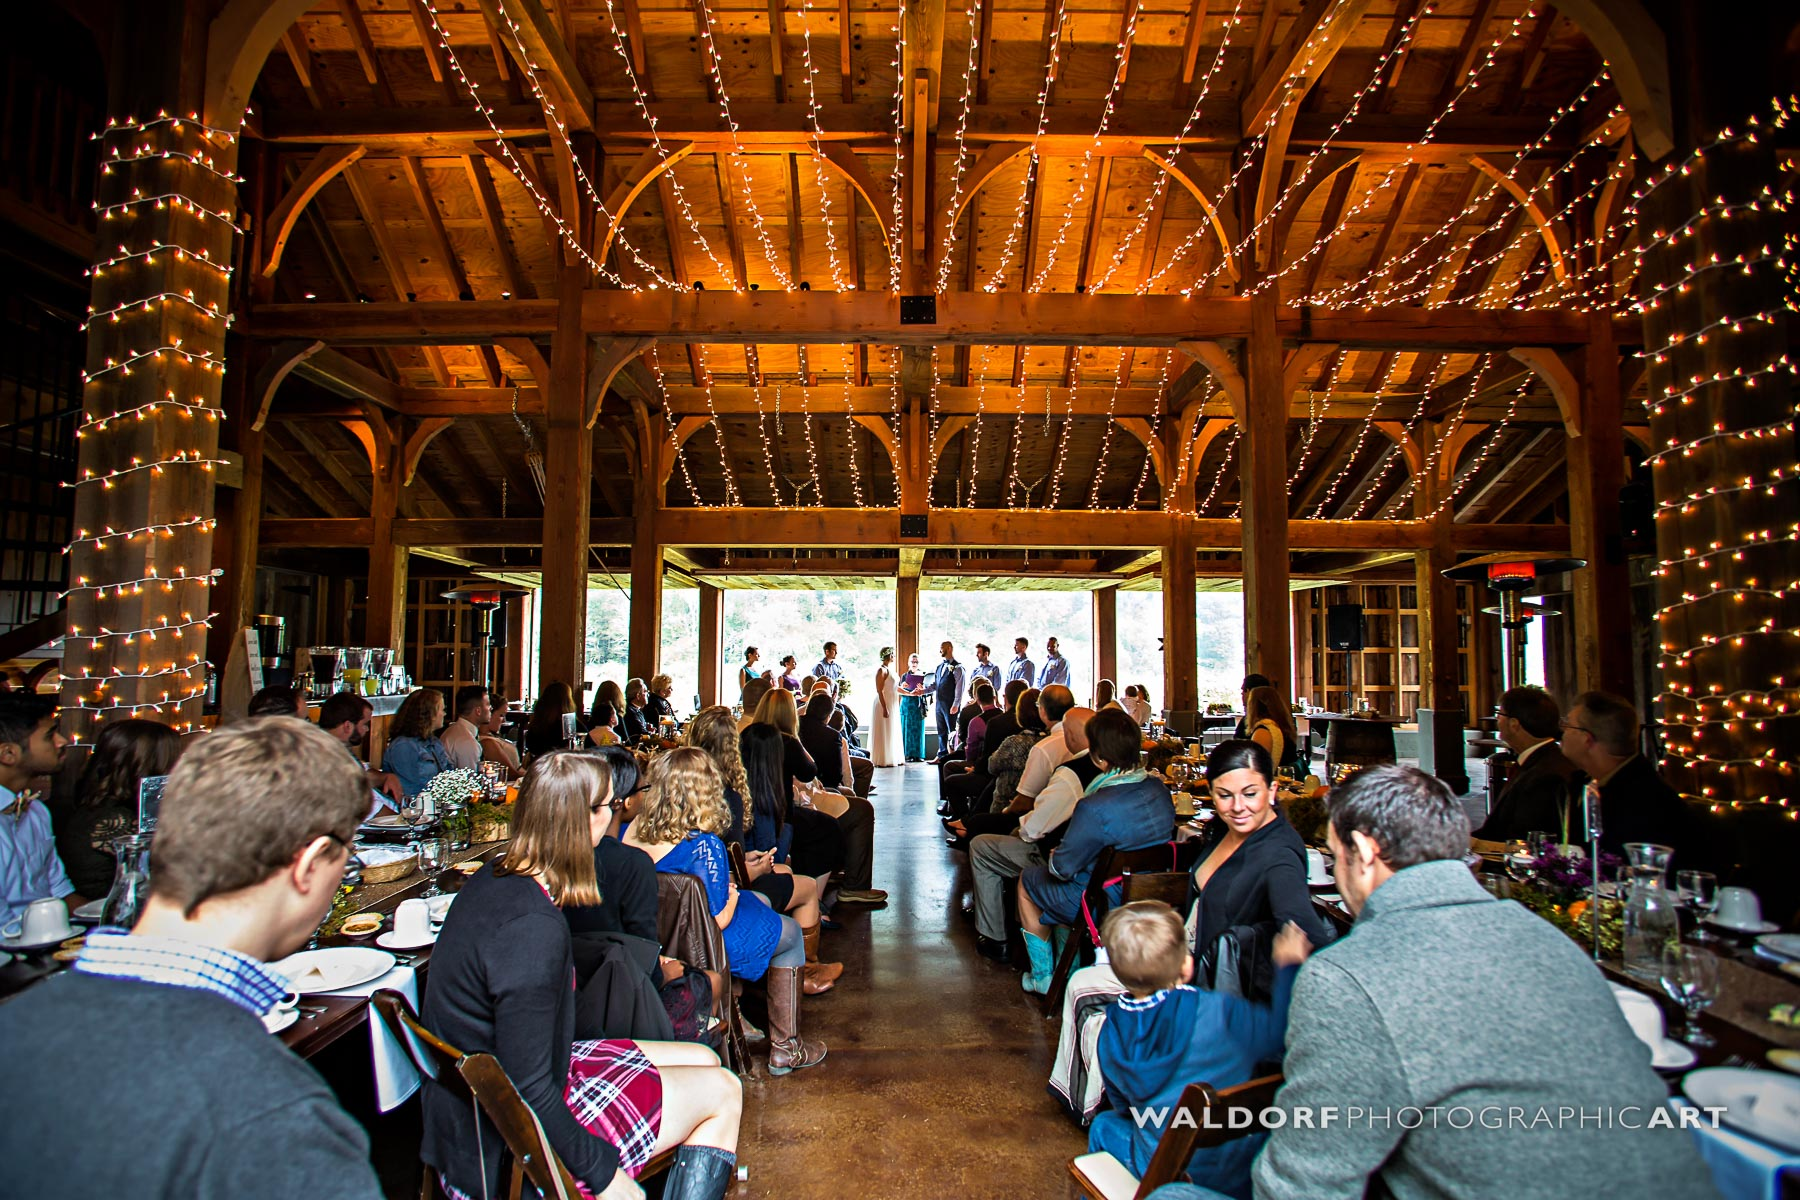 Indoor ceremony option in case of rain at Pure Water Farm barn wedding near Gatlinburg